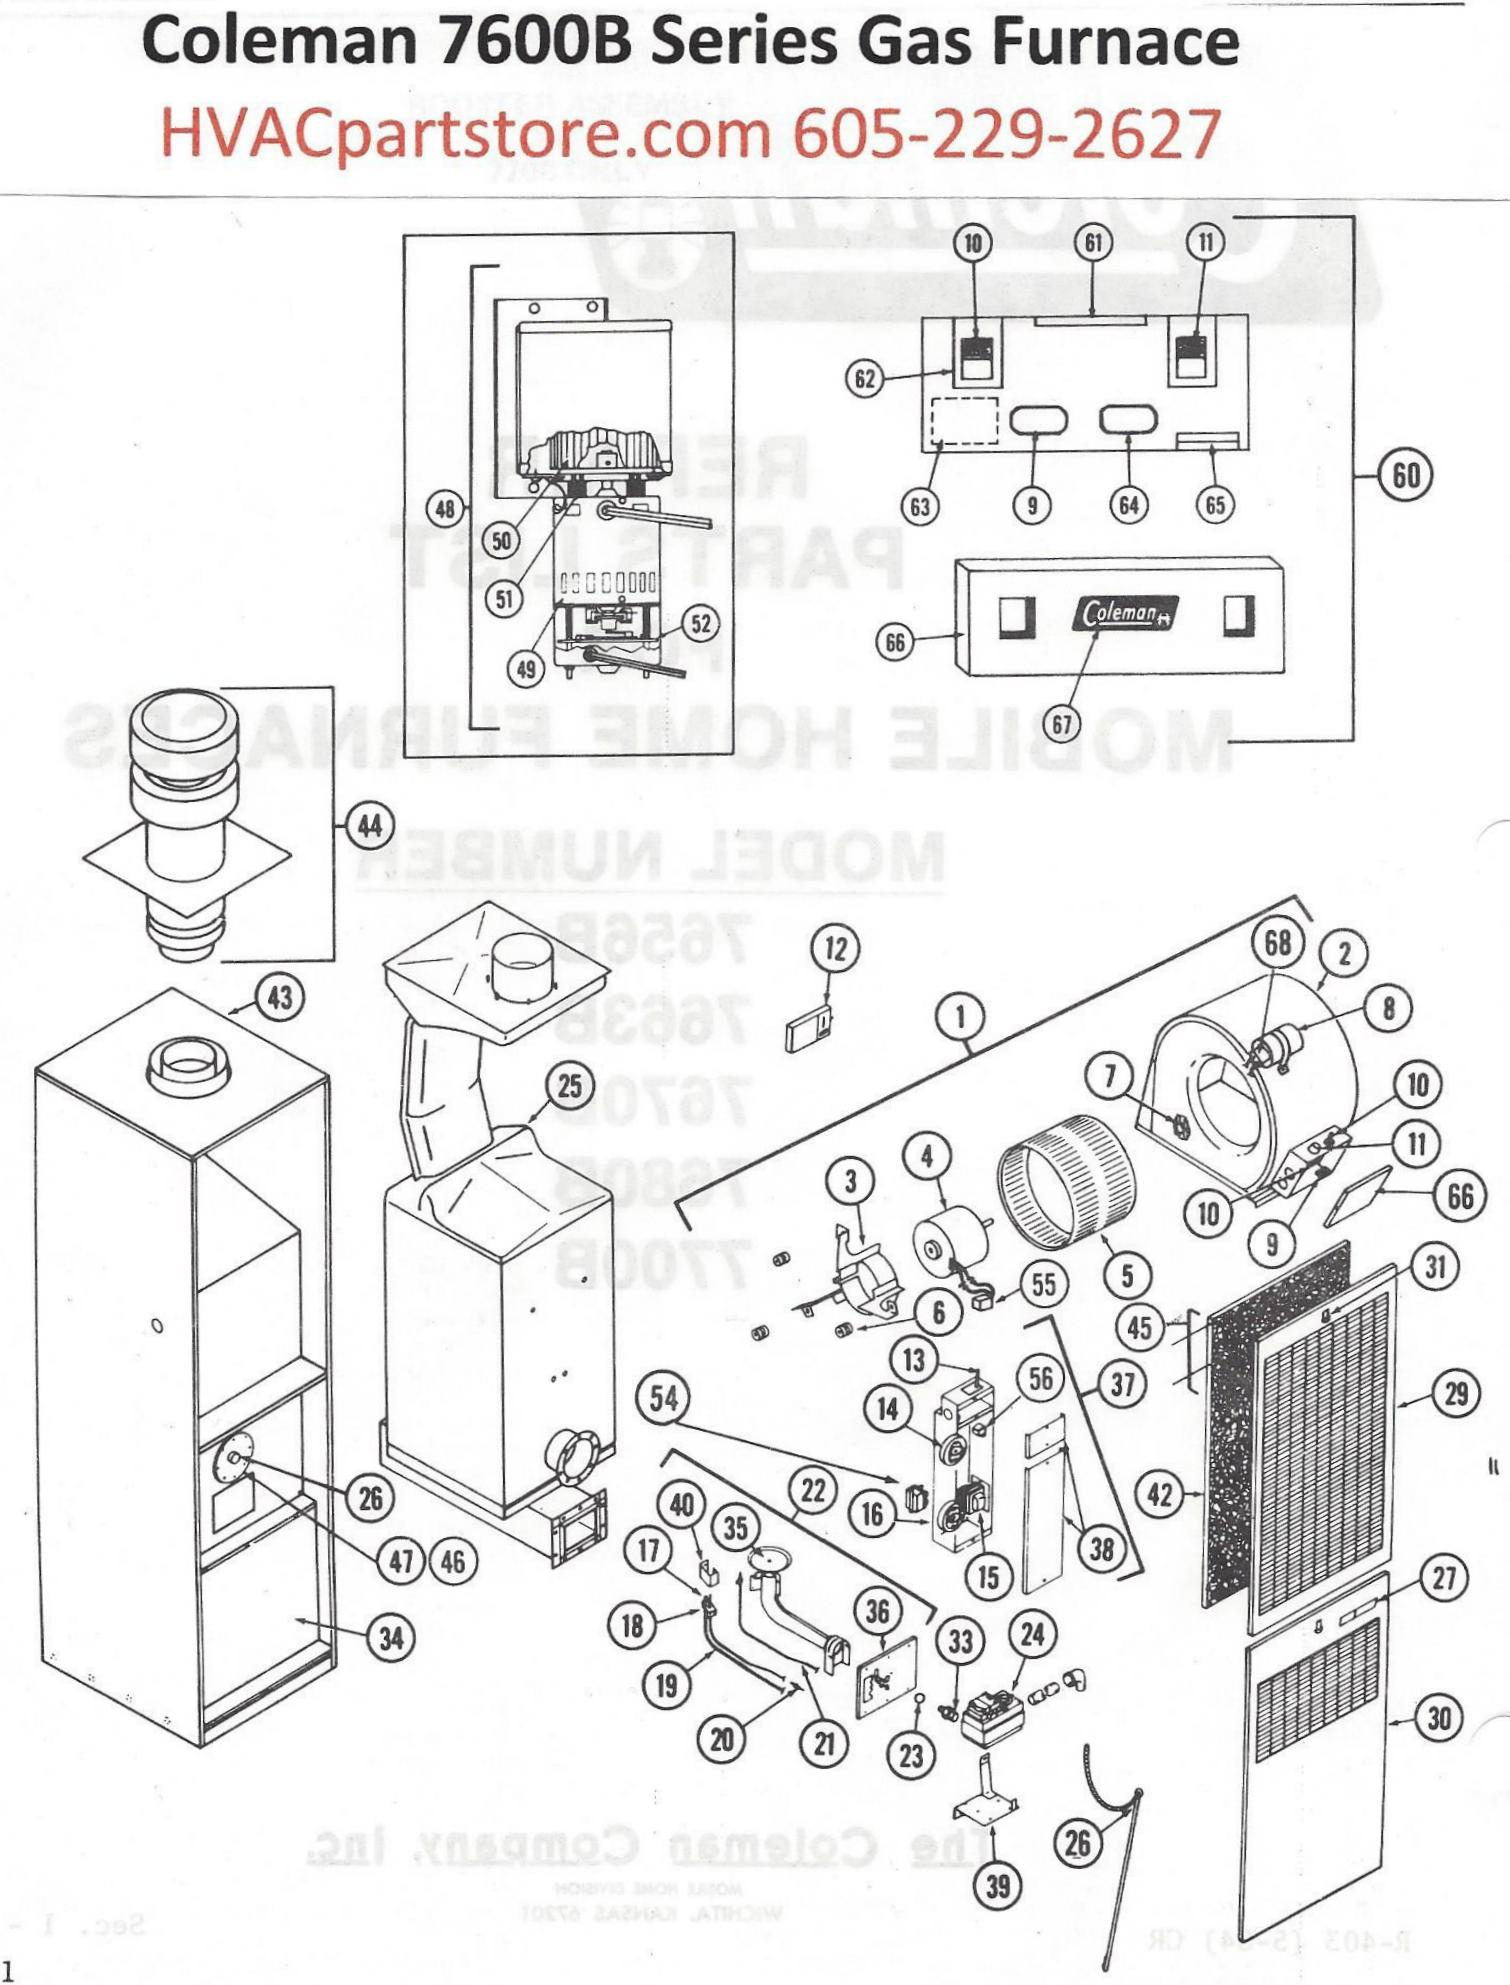 7656b856 Coleman Gas Furnace Parts  U2013 Hvacpartstore